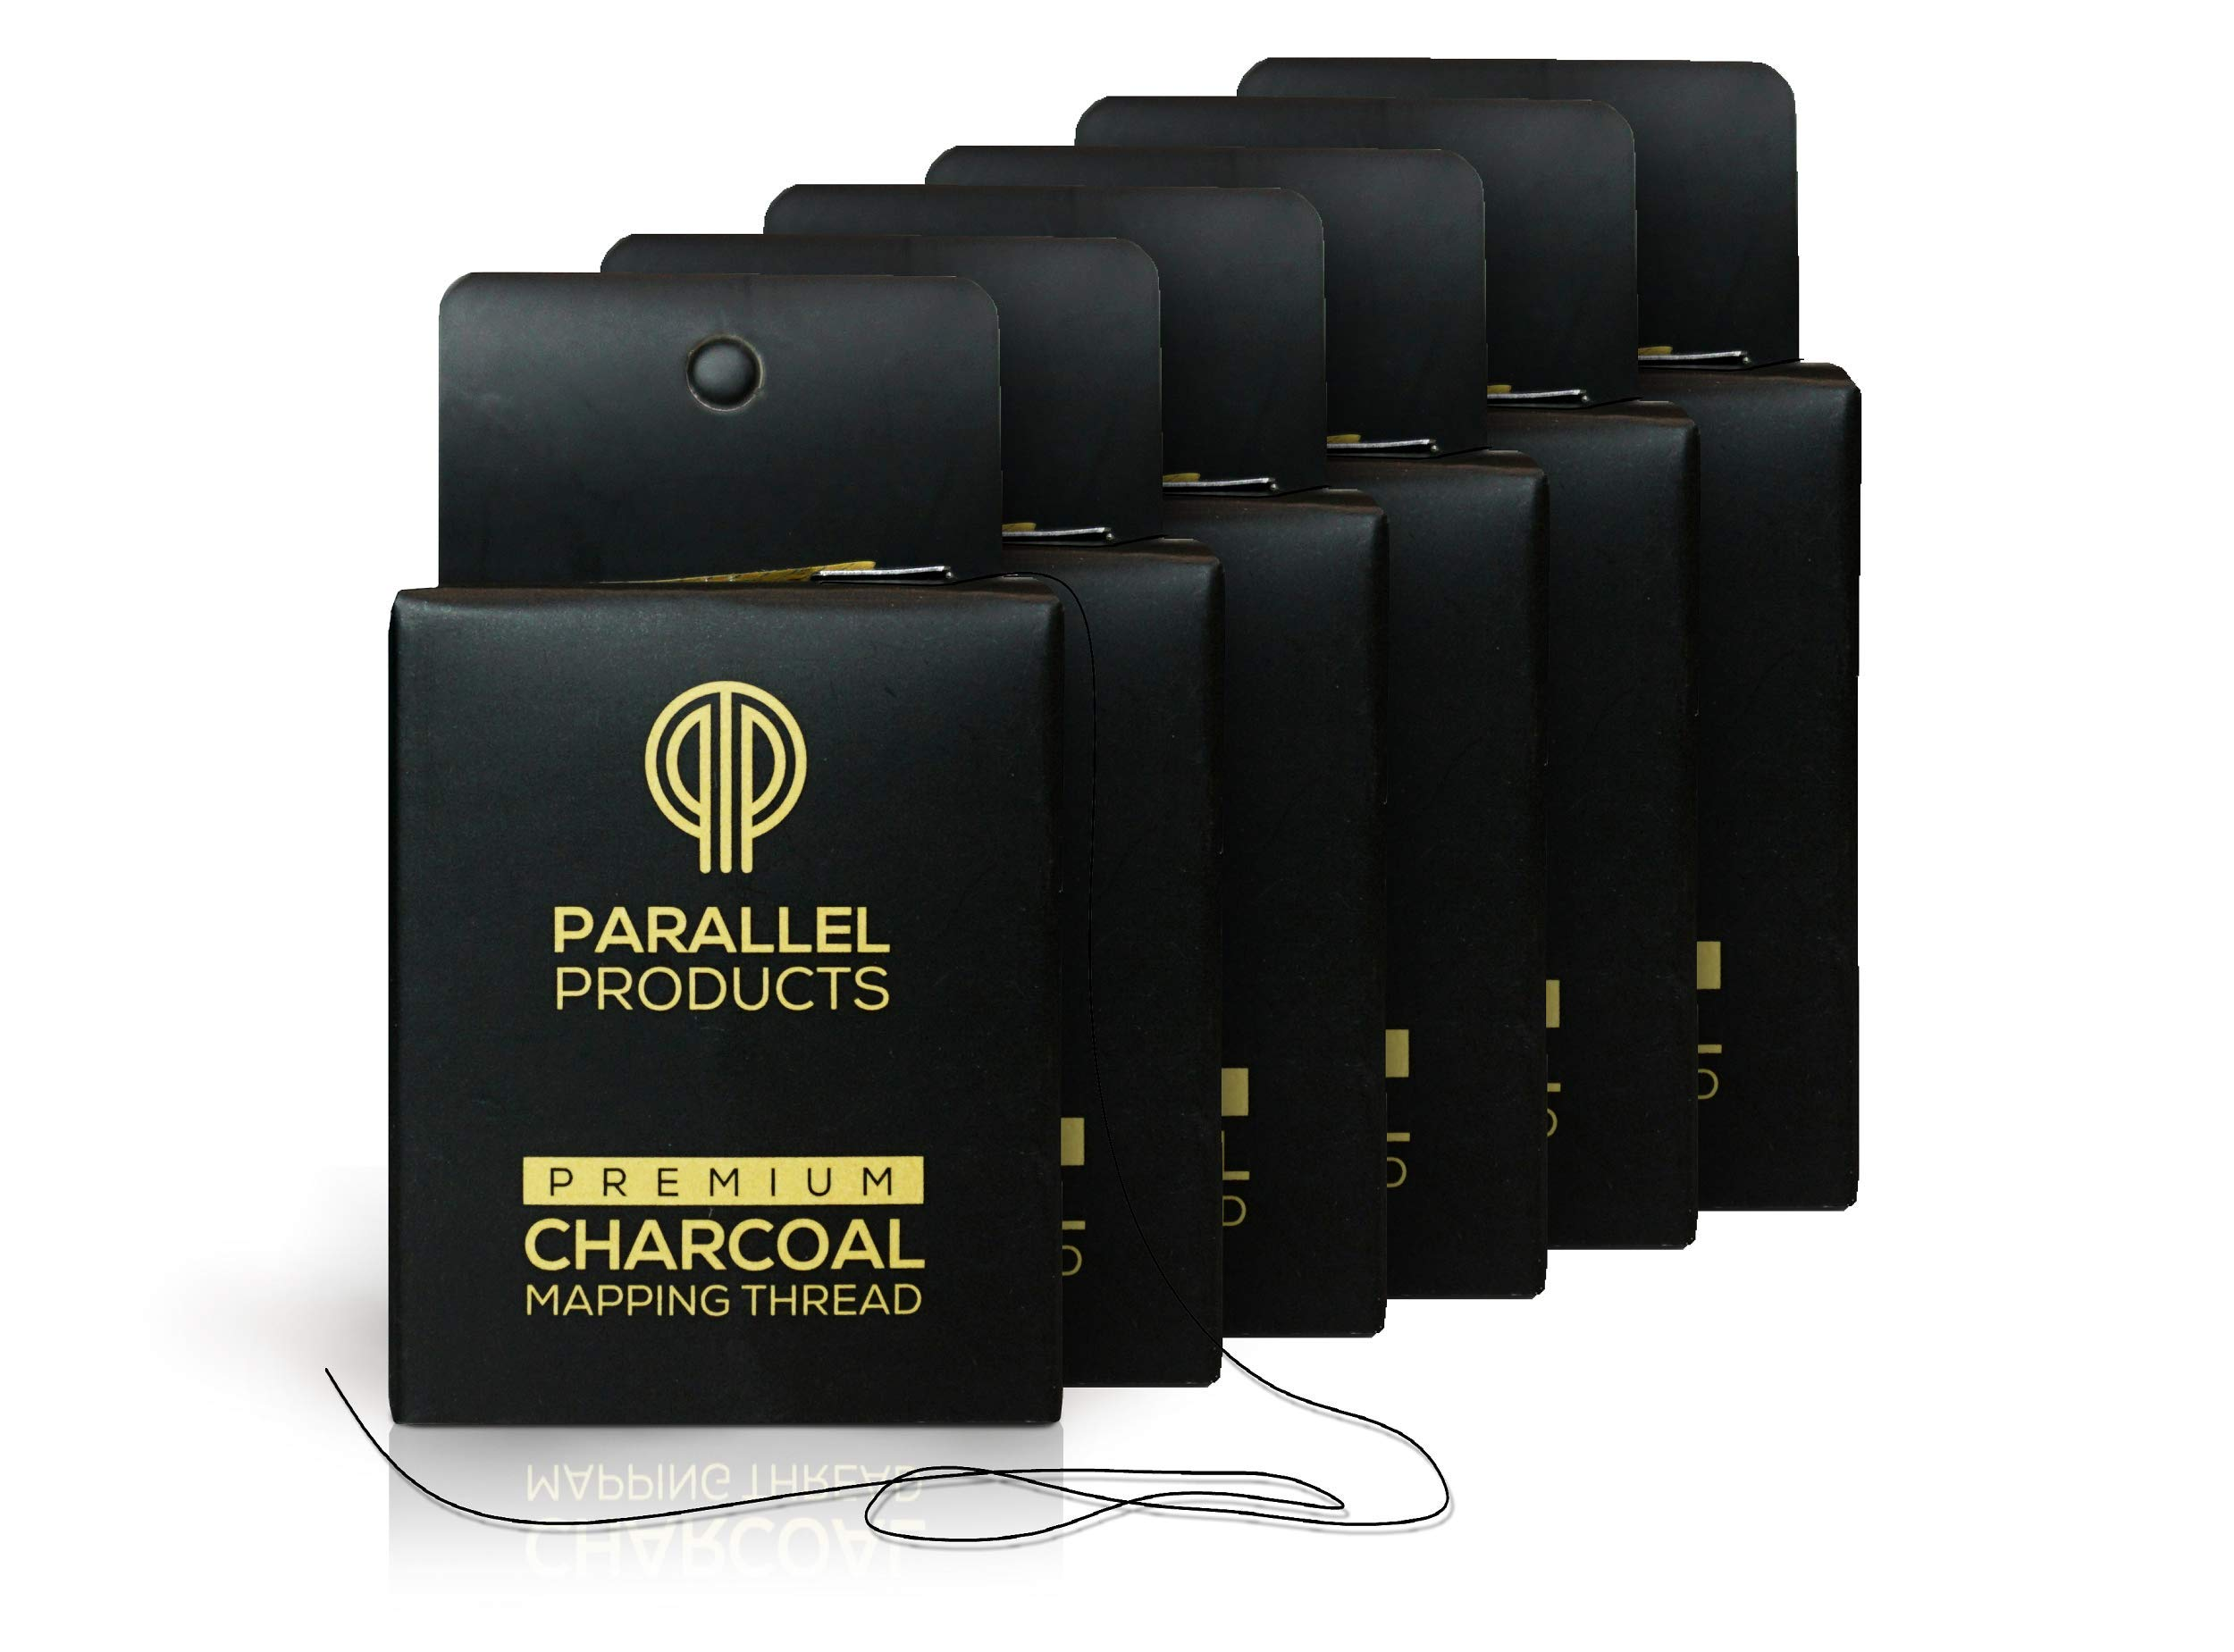 Parallel Products - (6 Pack) Premium Eyebrow Mapping String for Microblading - Pre-Inked - 1 mm Fine Bamboo Charcoal Thread - 10 Meters/32 Feet per Box